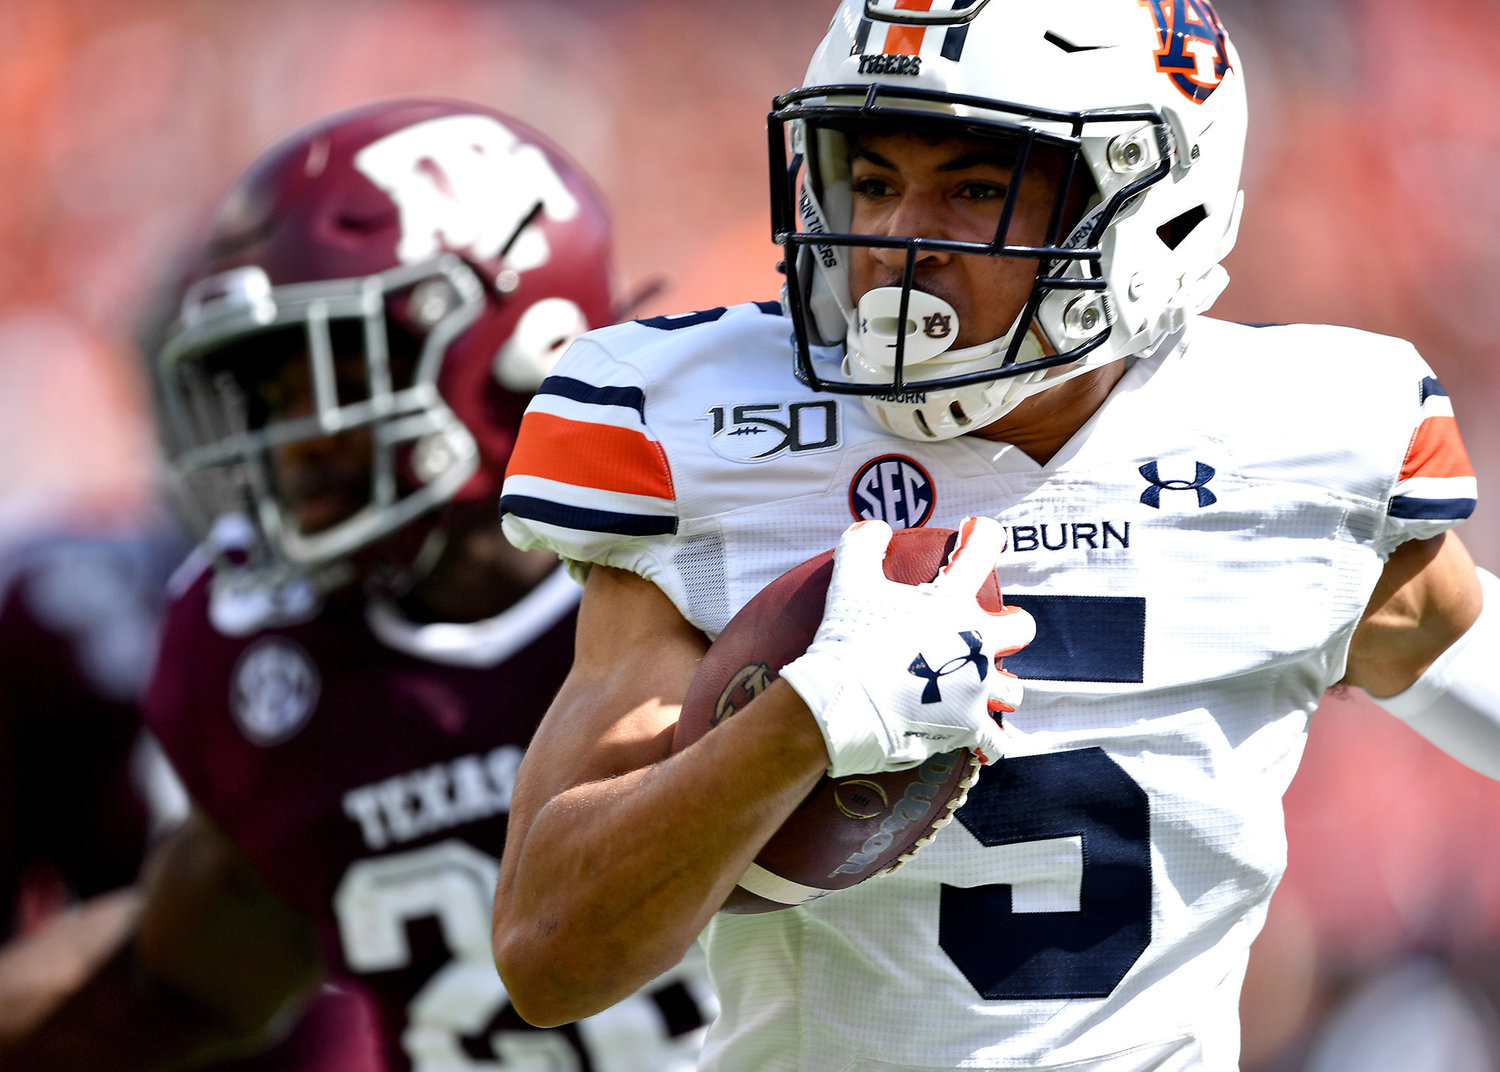 Auburn Tigers wide receiver Anthony Schwartz (5) on his way to a touchdown in the first quarter an NCAA football game between the Texas A&M Aggies and the Tigers Saturday, Sept. 21, 2019, at Kyle Field in College Station Texas. Auburn wins 28-20.